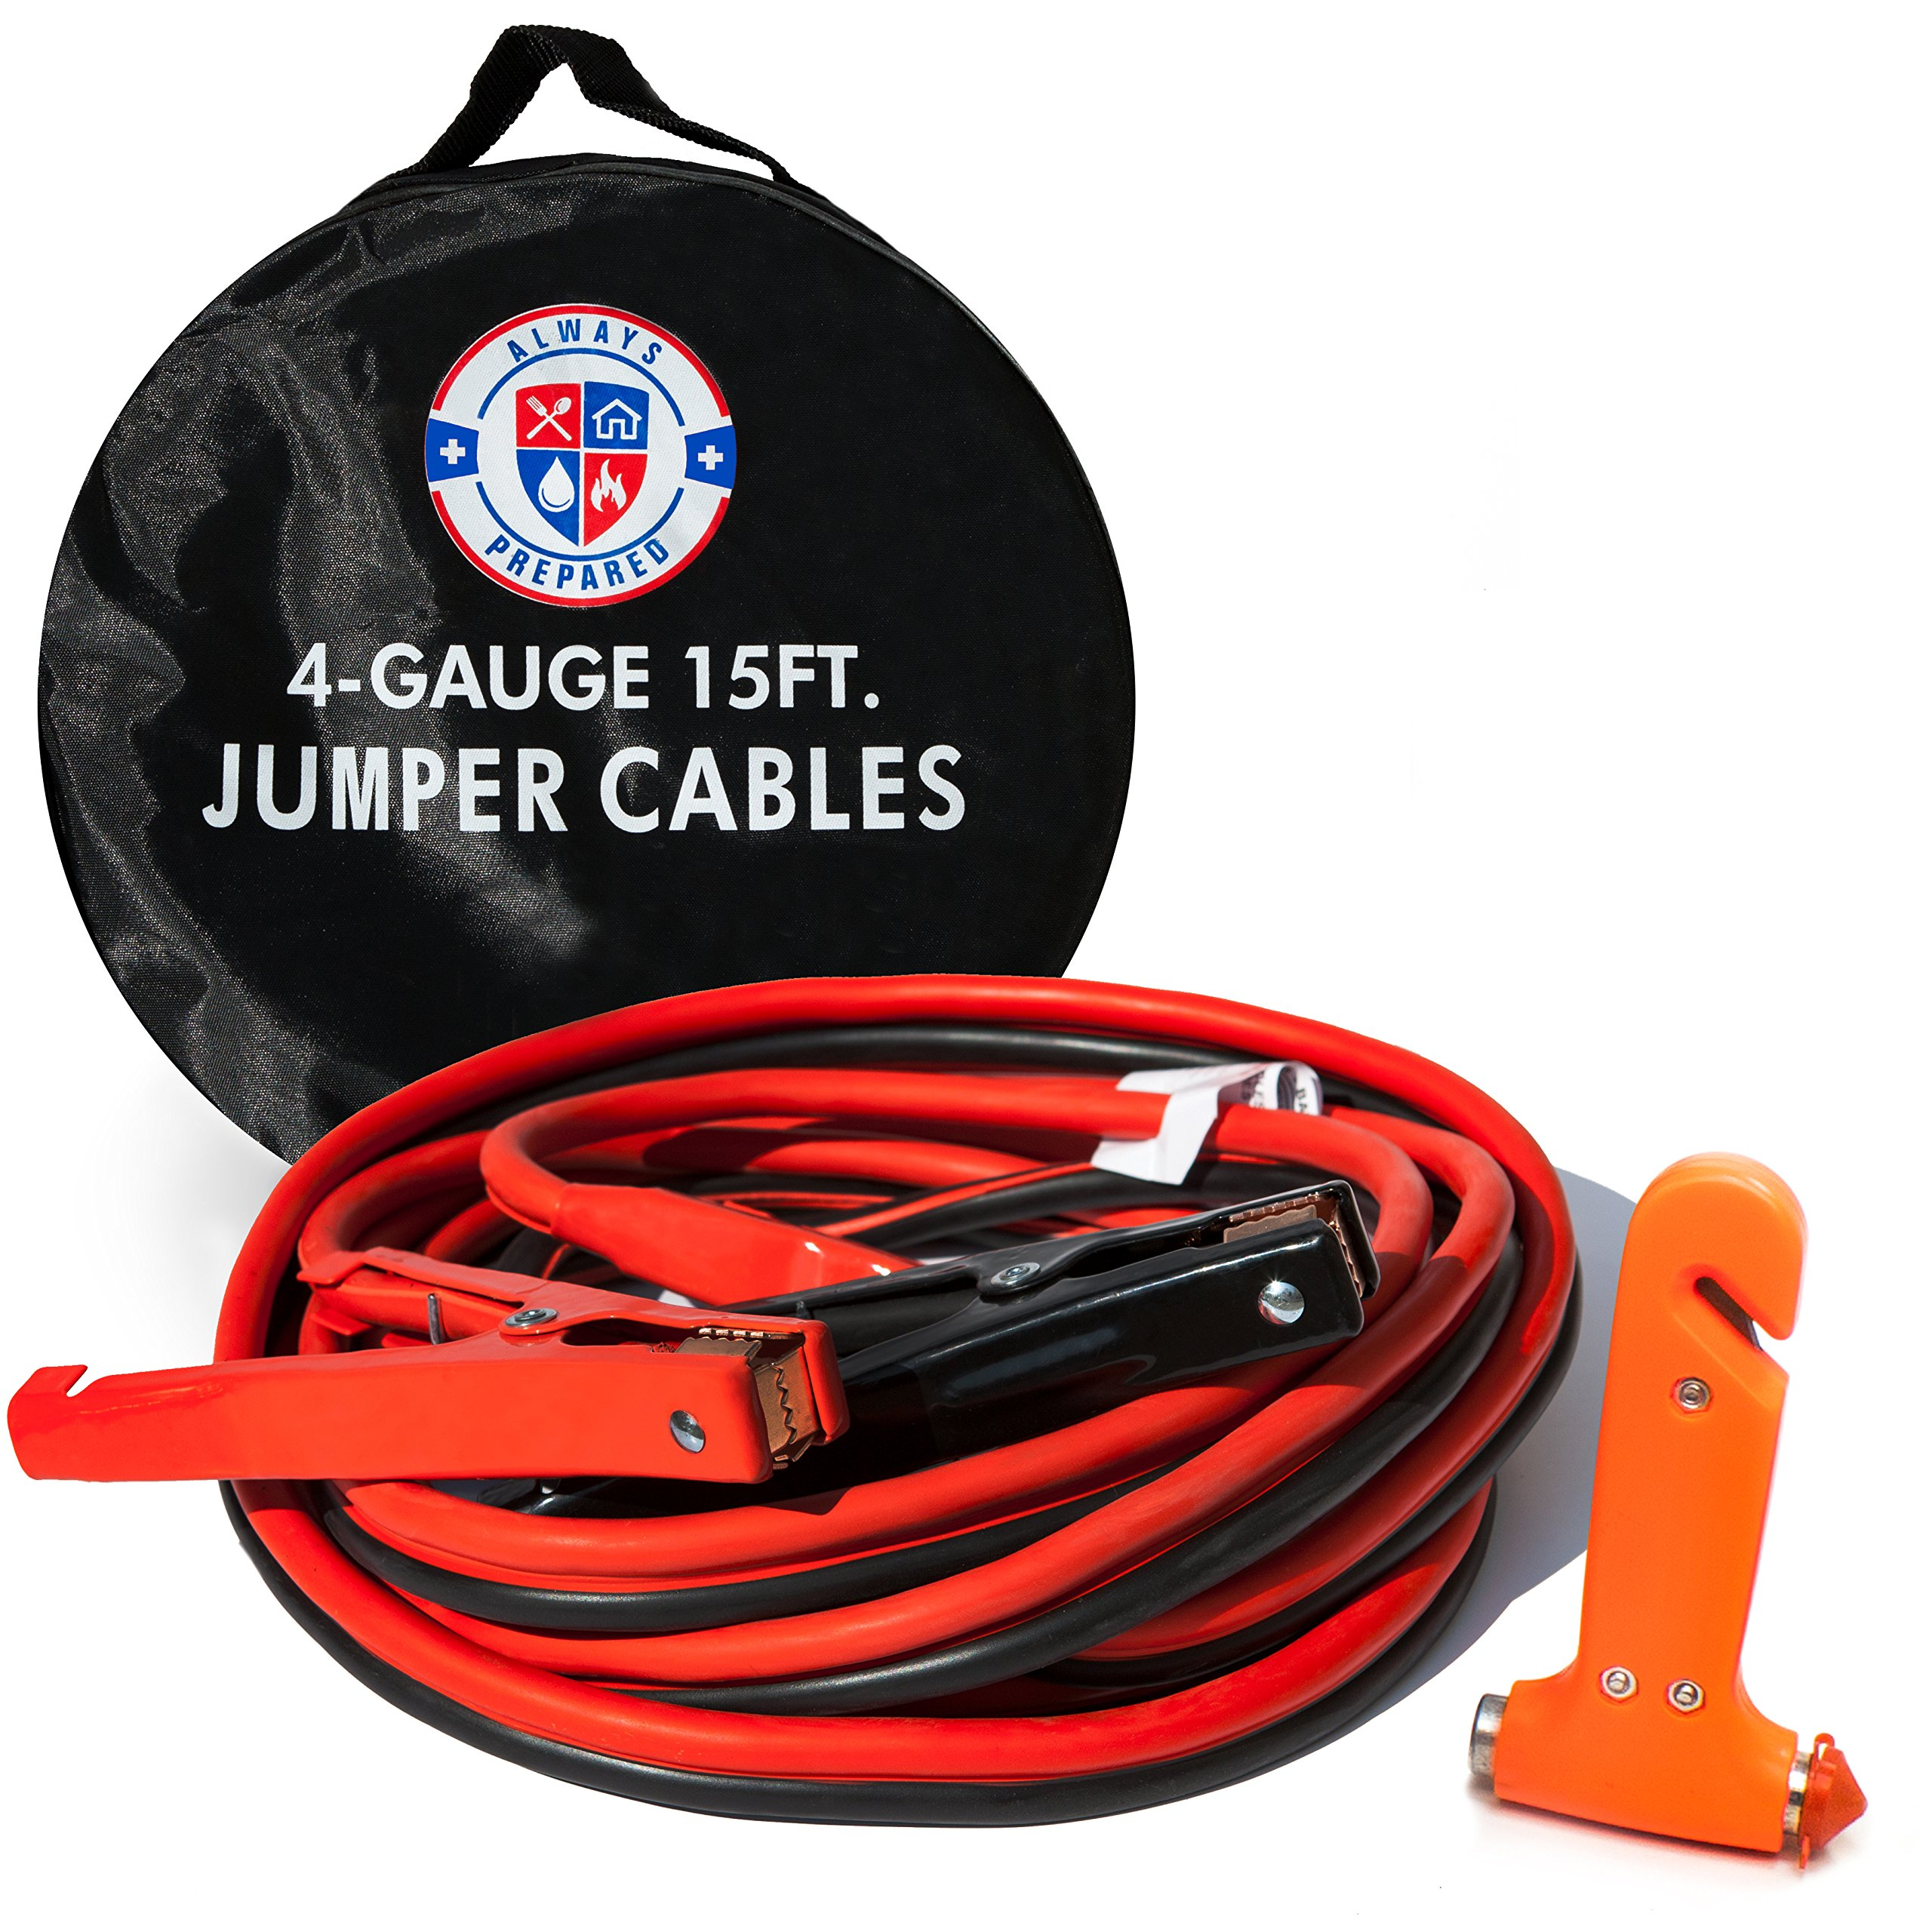 Best Rated In Automotive Replacement Battery Cables Helpful Gator Fuse Box Jumper 4 Gauge 15 Feet W Carry Bag Emergency Auto Escape Tool